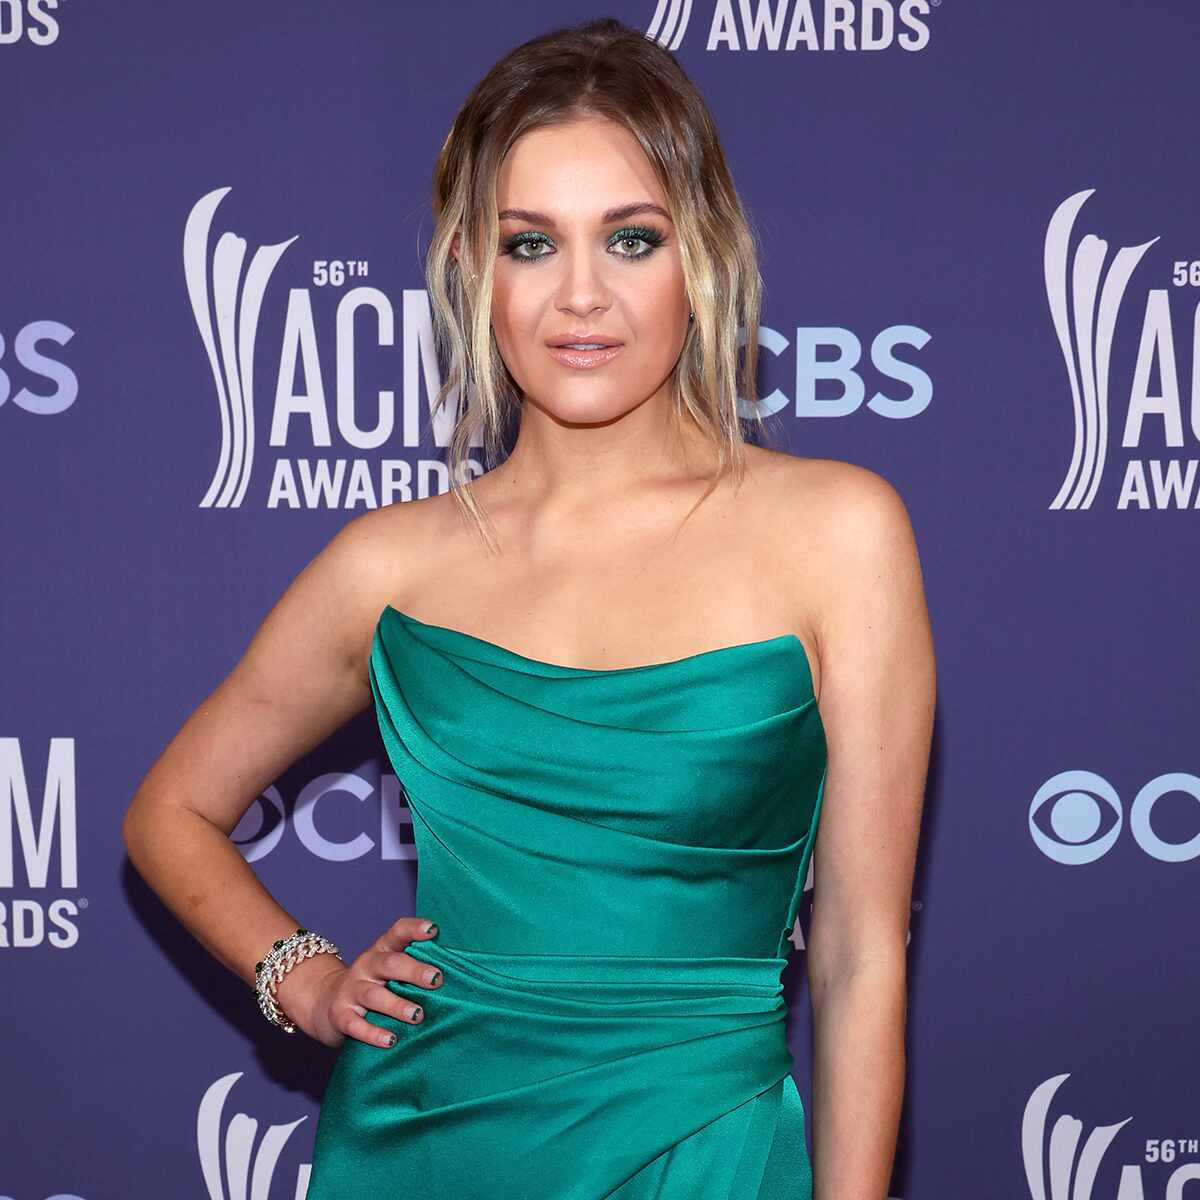 Kelsea Ballerini, 2021 ACM Awards, 2021 Academy of Country Music Awards, Red Carpet Fashion